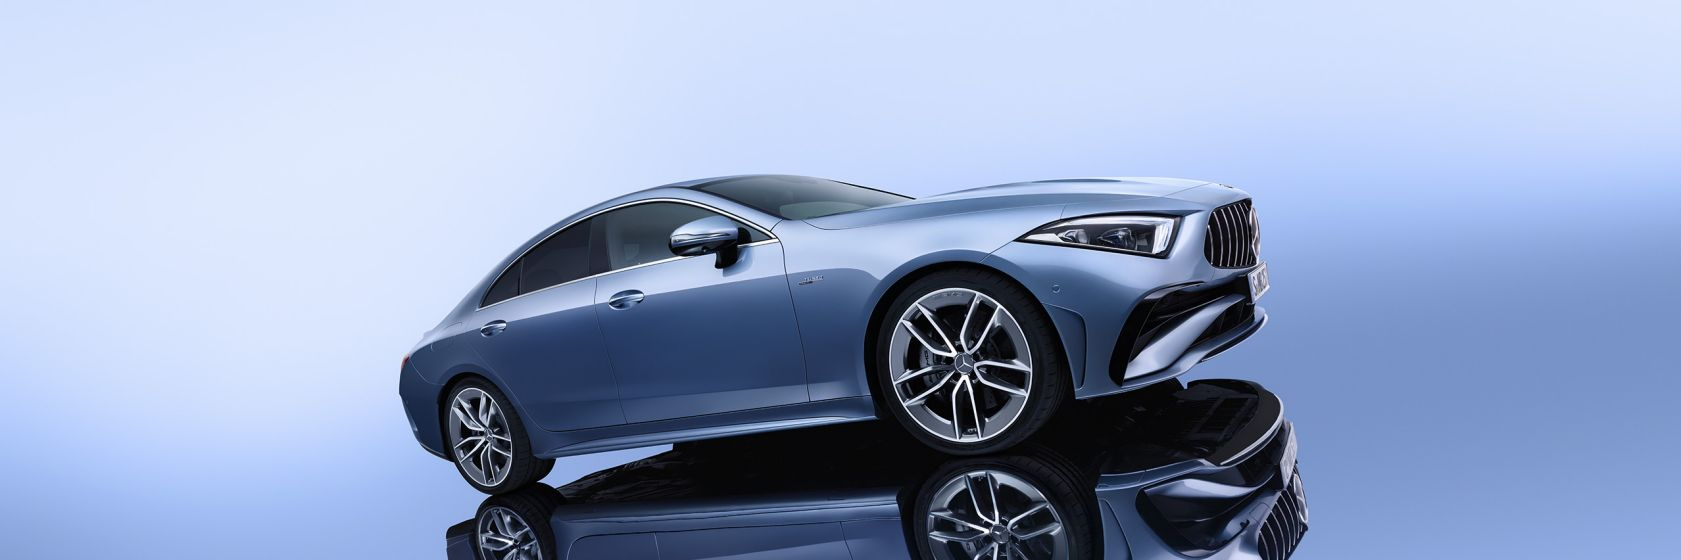 Mercedes-Benz-CLS-coupe-AMG-Car-Avenue-Stock-05